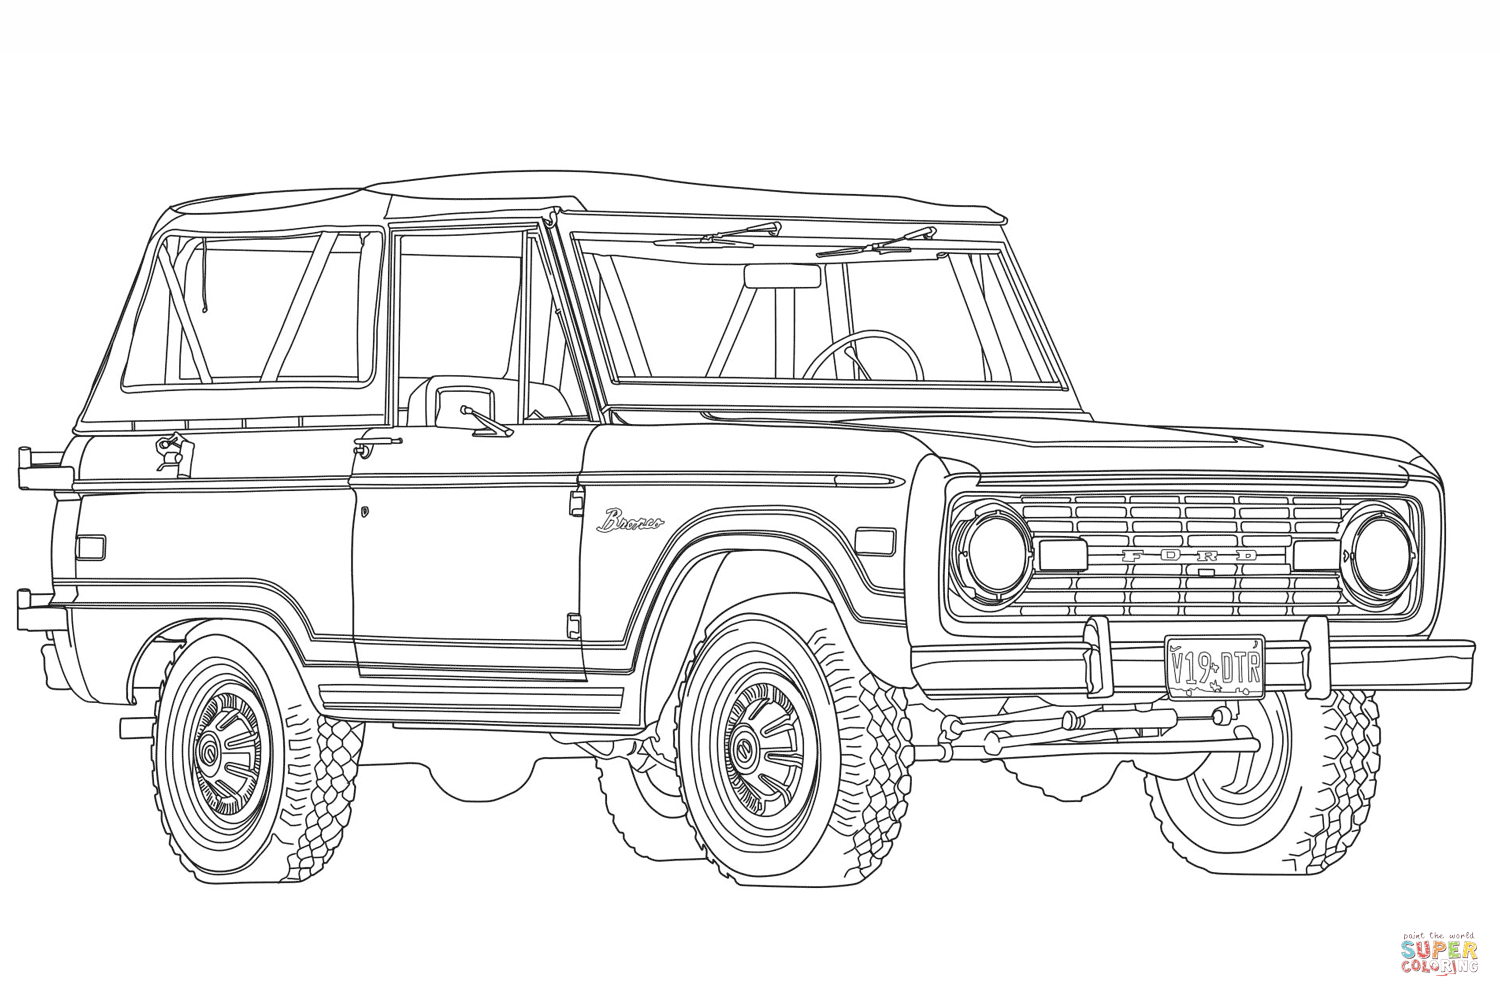 lifted ford truck coloring pages lifted truck coloring pages free coloring library pages lifted truck coloring ford